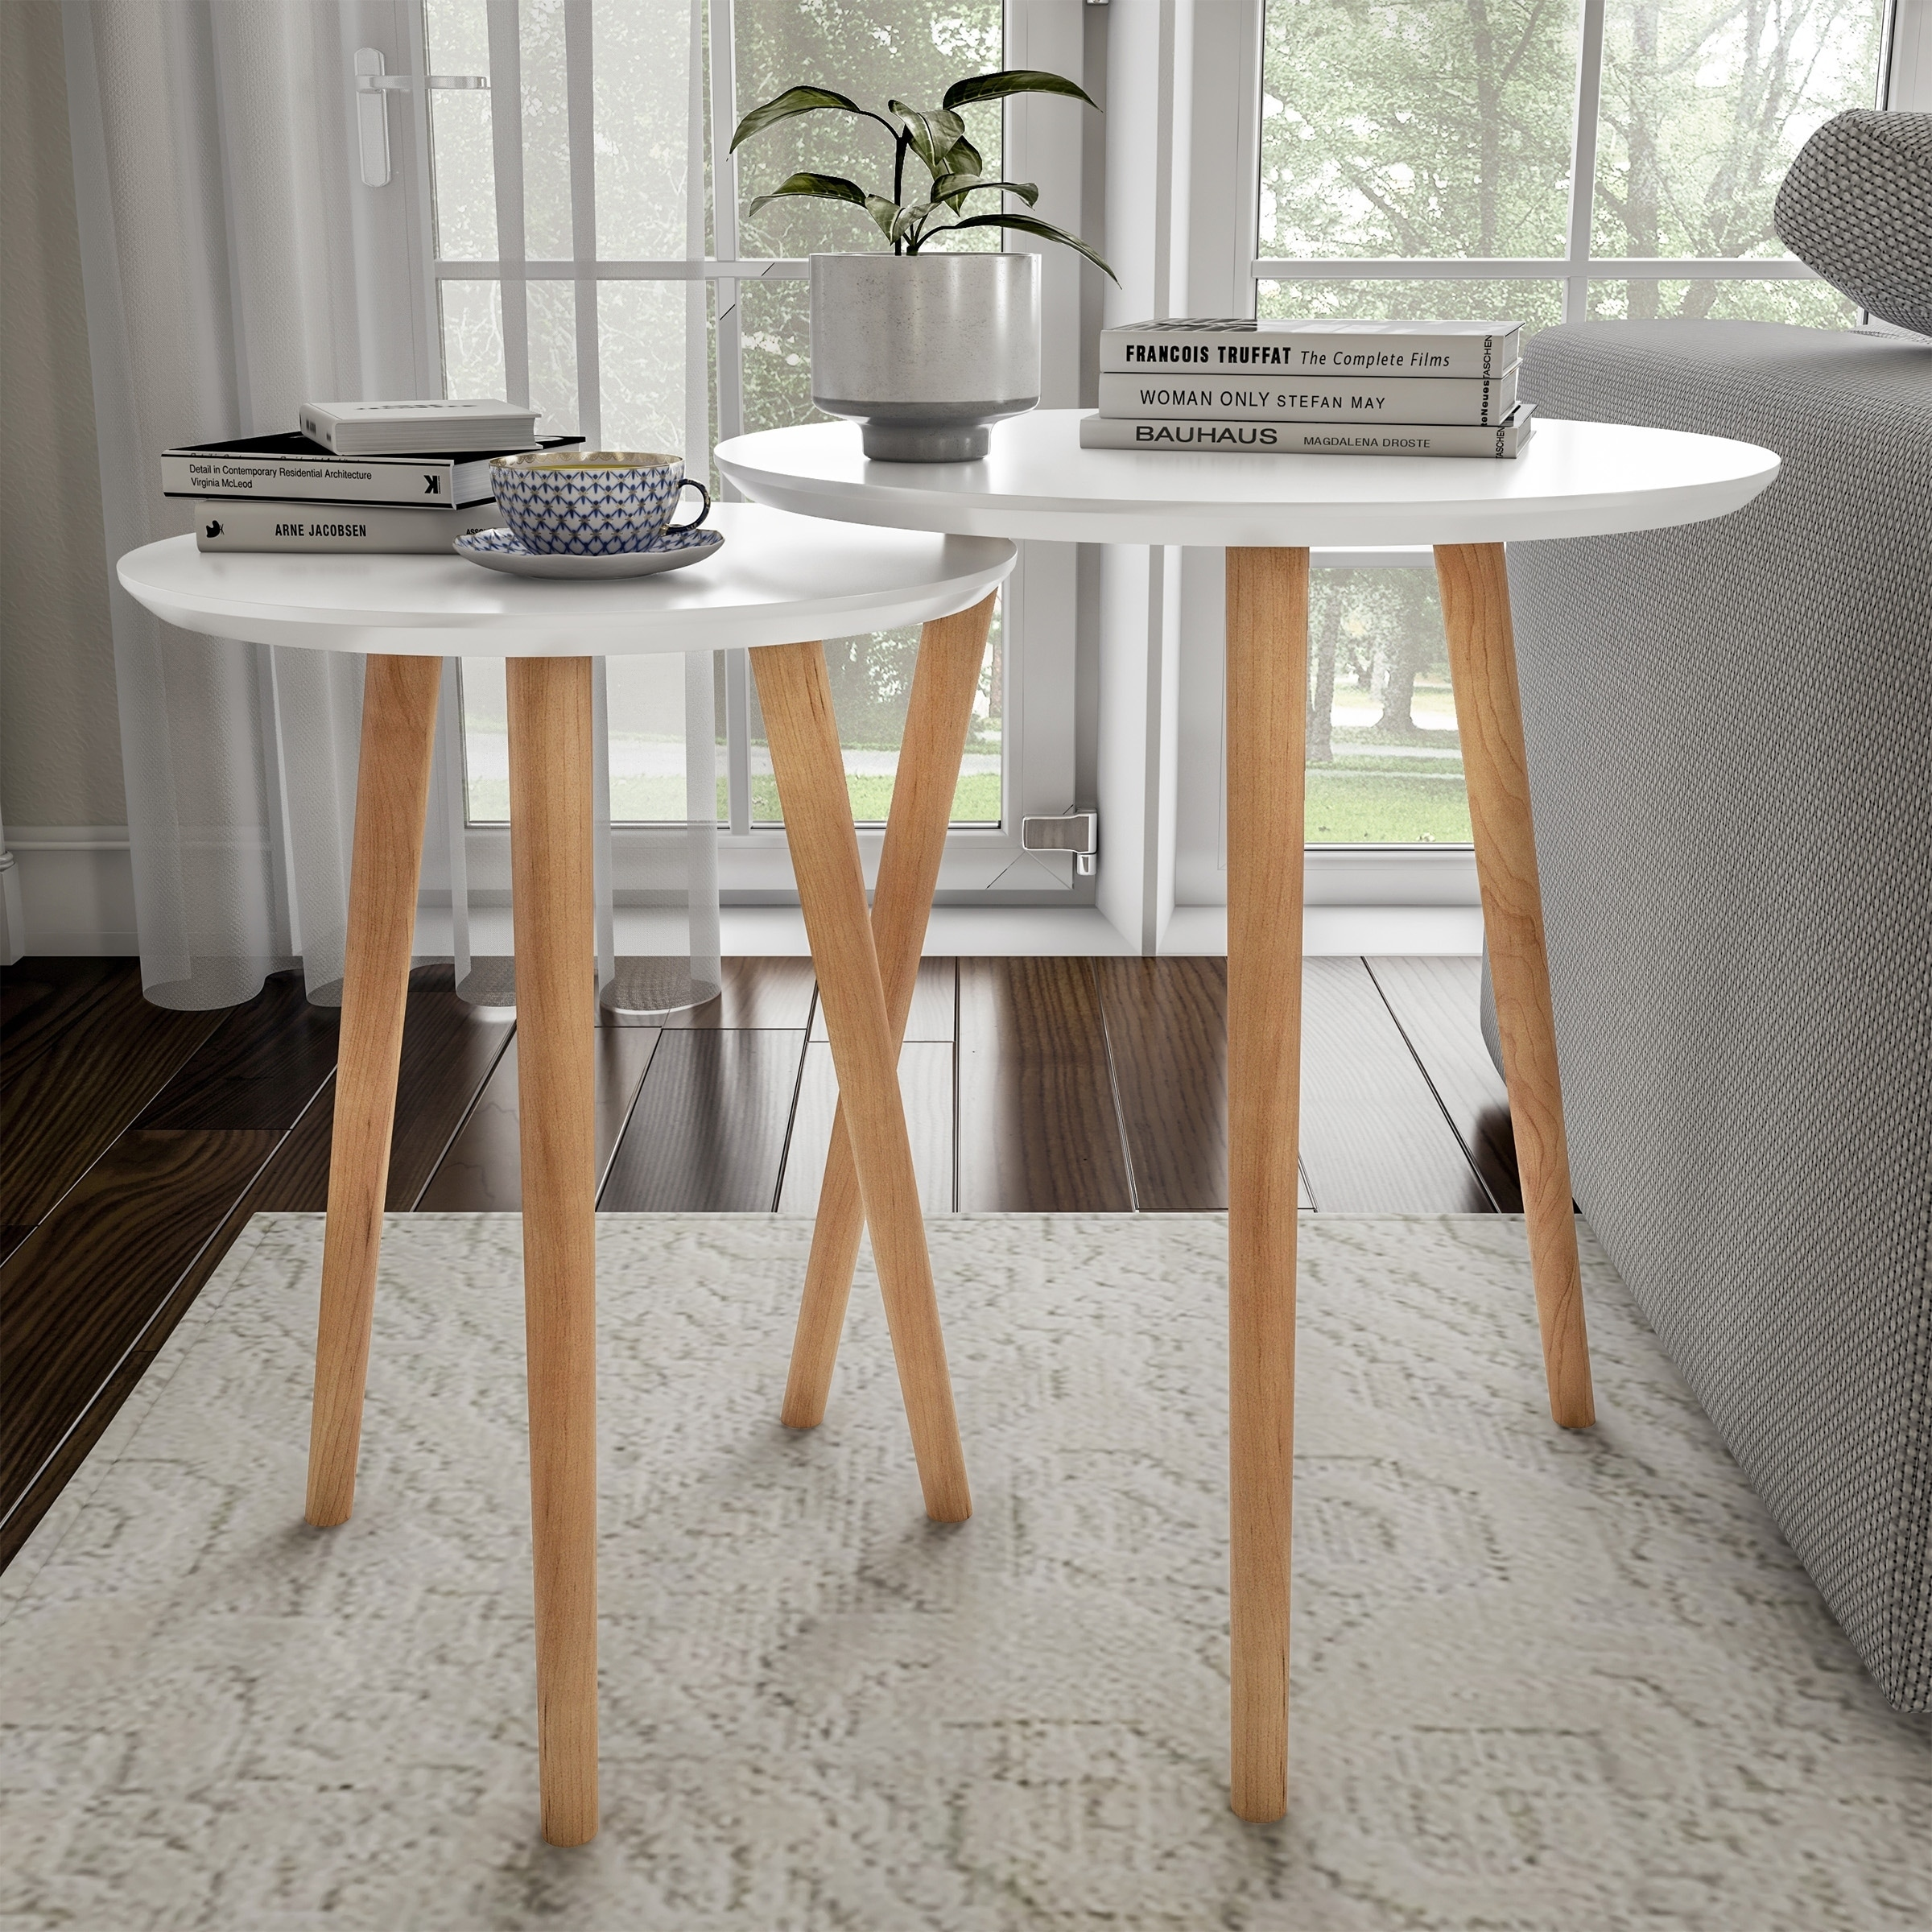 Nesting End Tables Mid Century Modern Wood Contemporary Accent Tables With Circular Top By Lavish Home Overstock 26980573